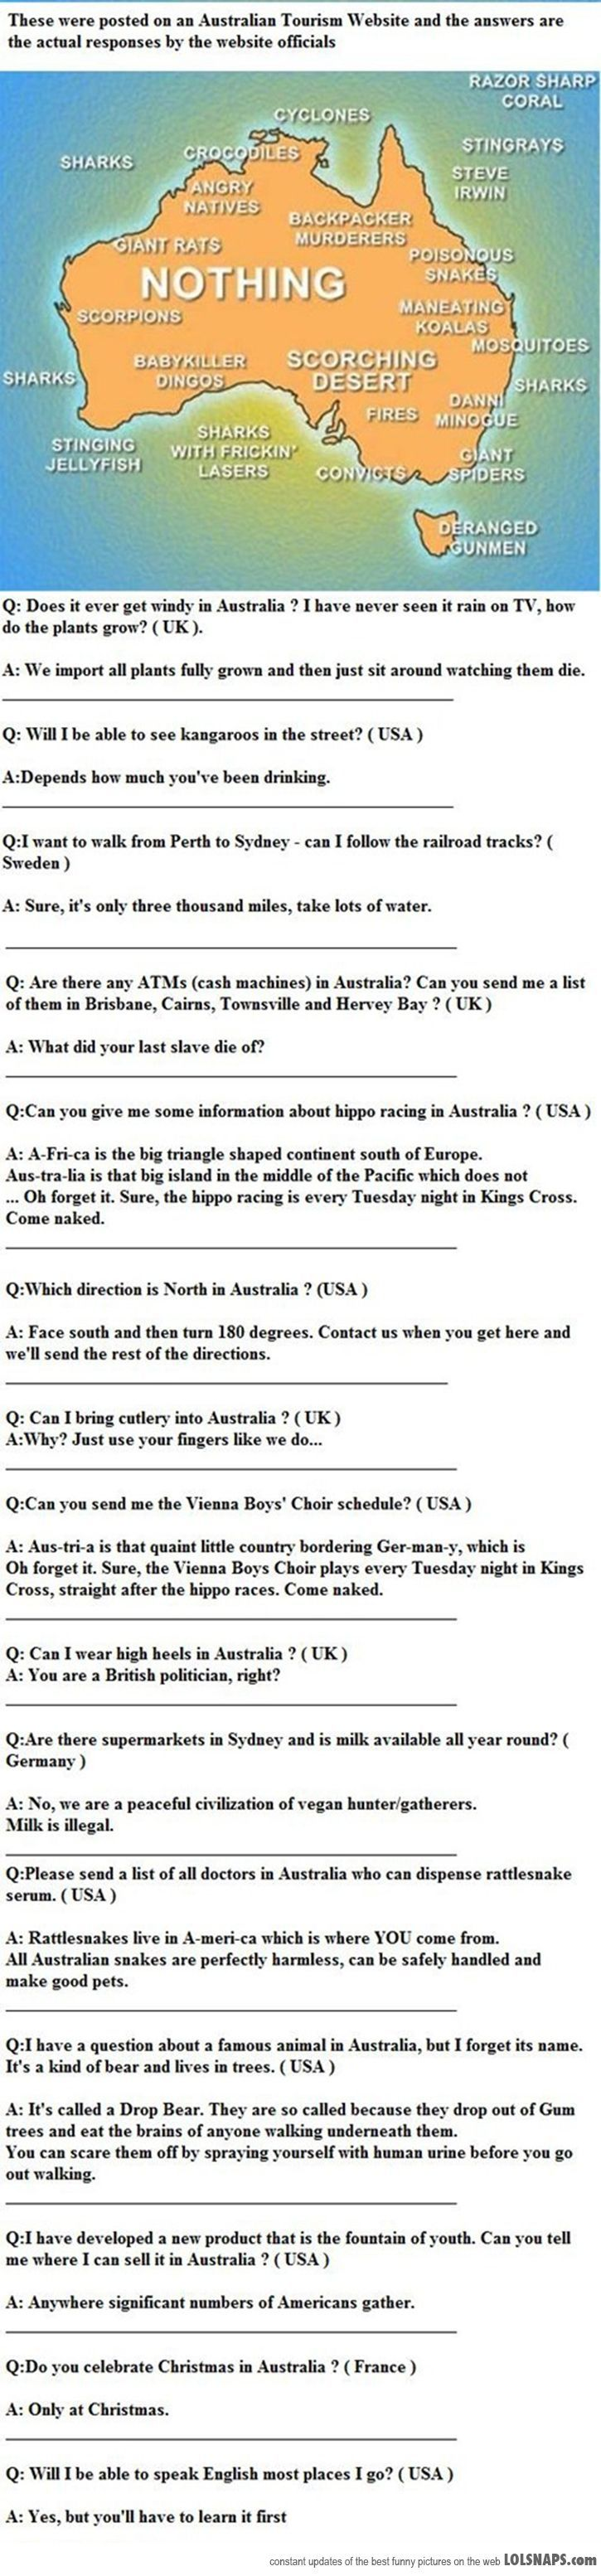 Important Tourist Information About Australia